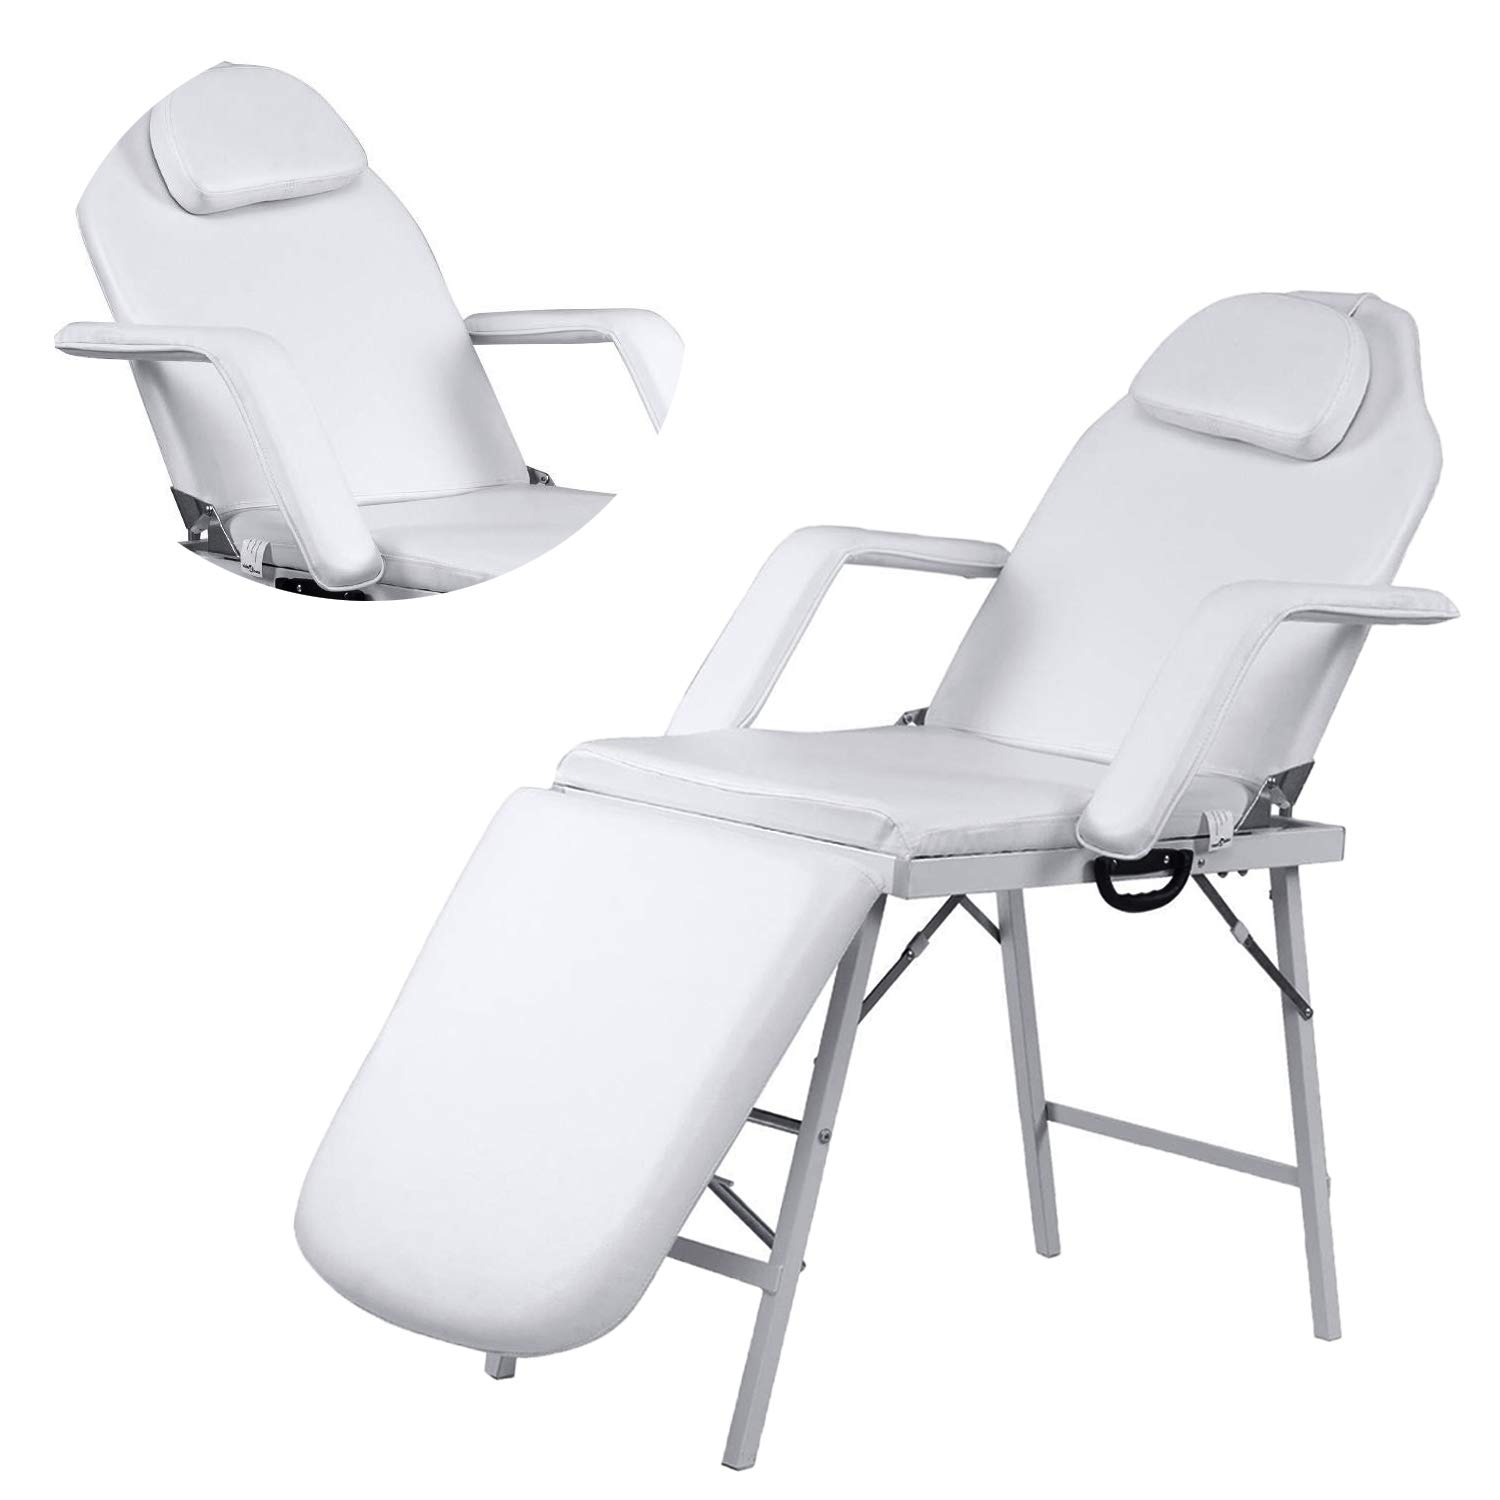 73'' L Adjustable Barber Spa Salon Massage Bed Facial Beauty Tattoo Chair White